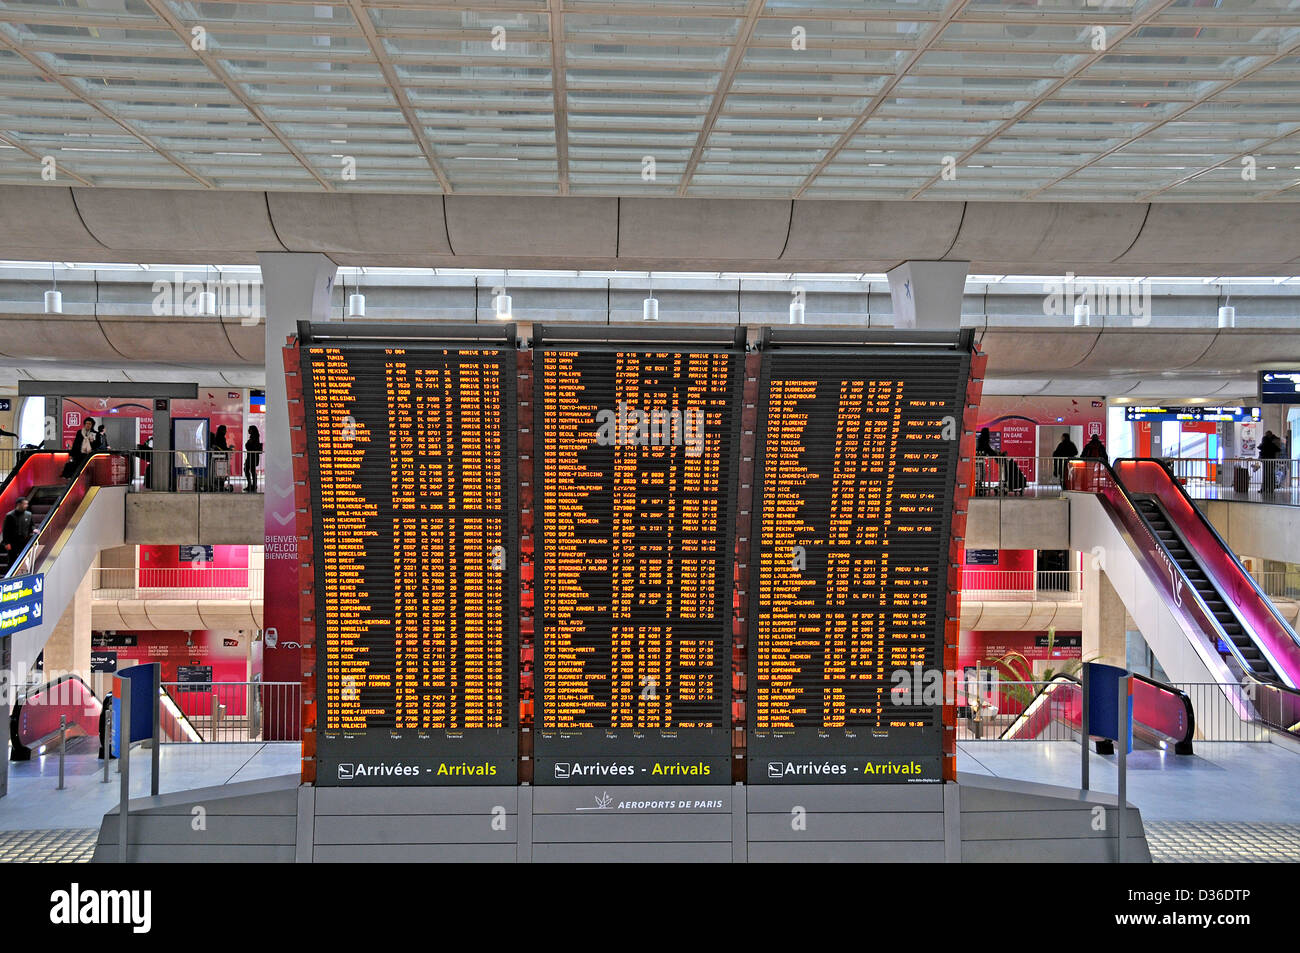 arrivals flights informations board Roissy Charles-de-Gaulle airport Paris France - Stock Image